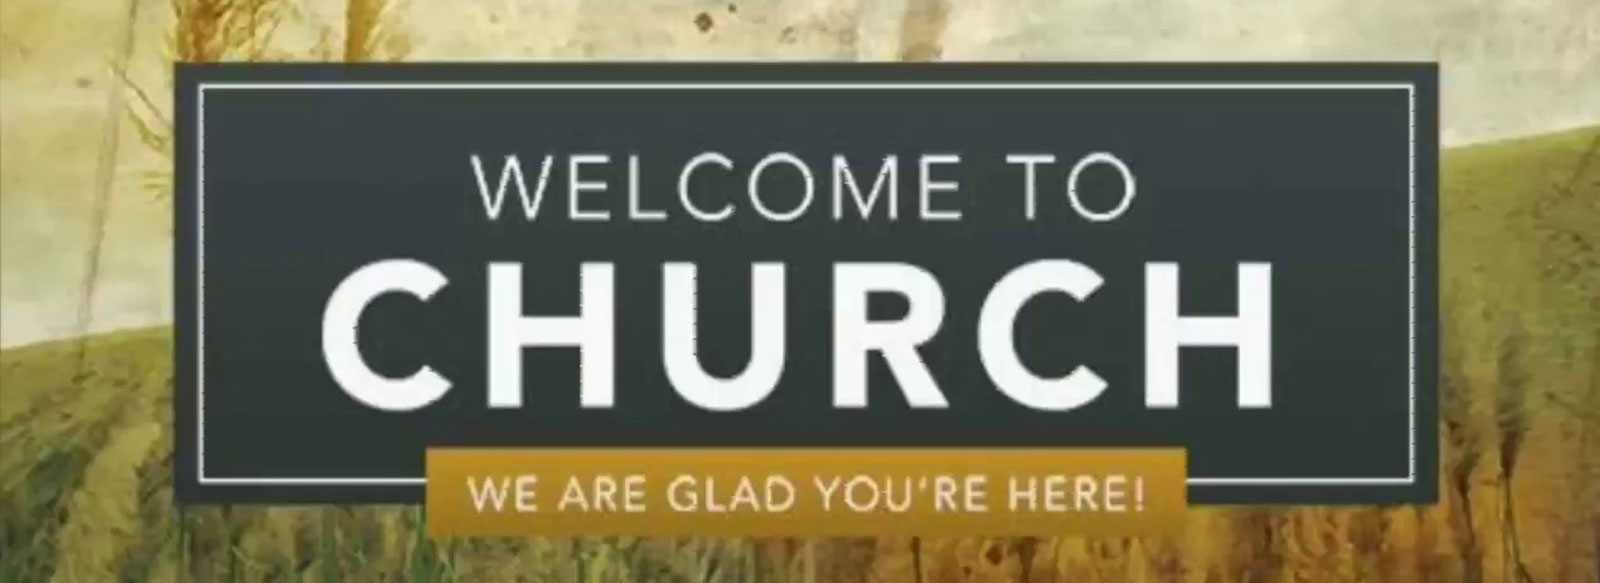 welcome-to-church